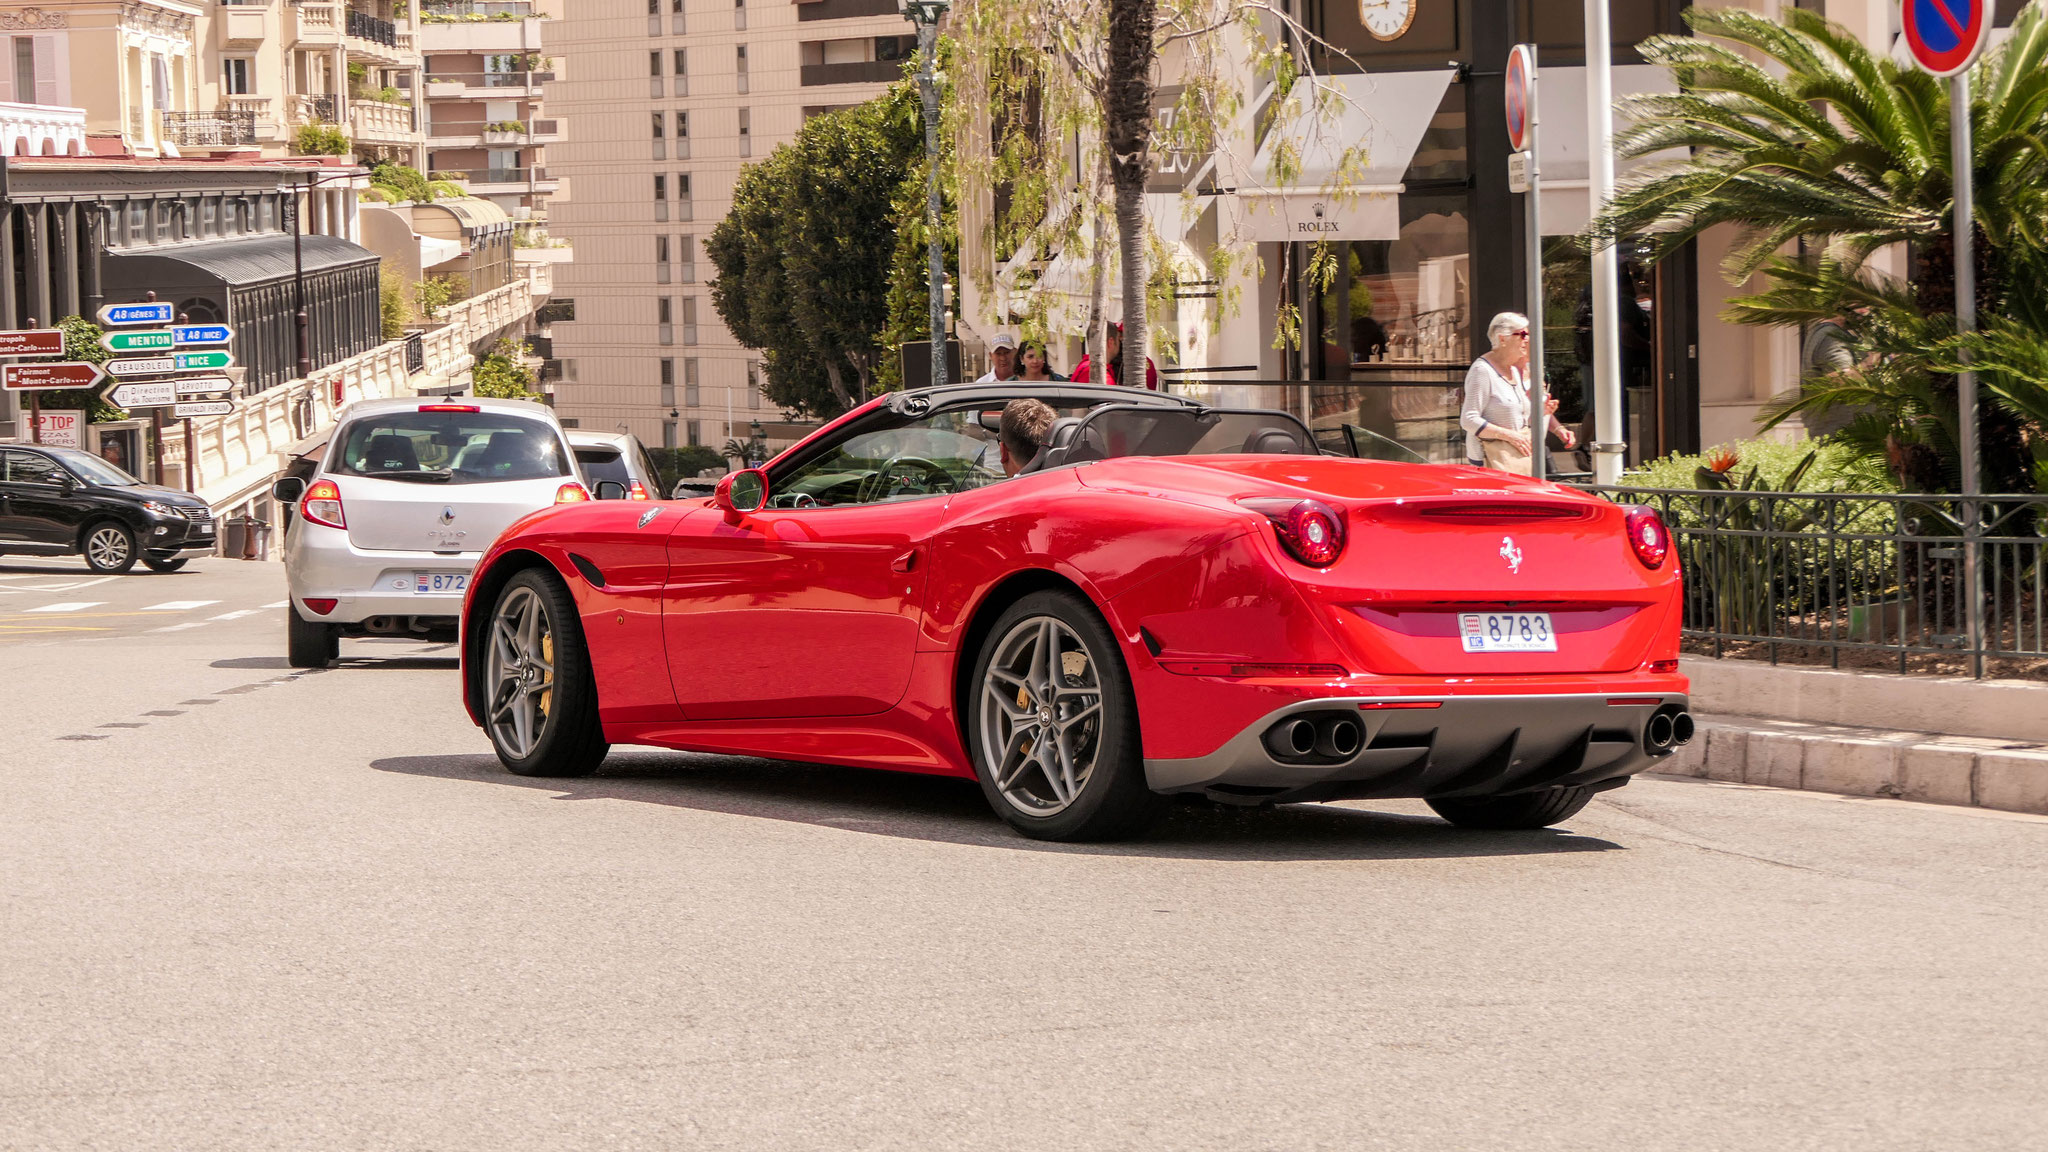 Ferrari California T - 8783 (MC)